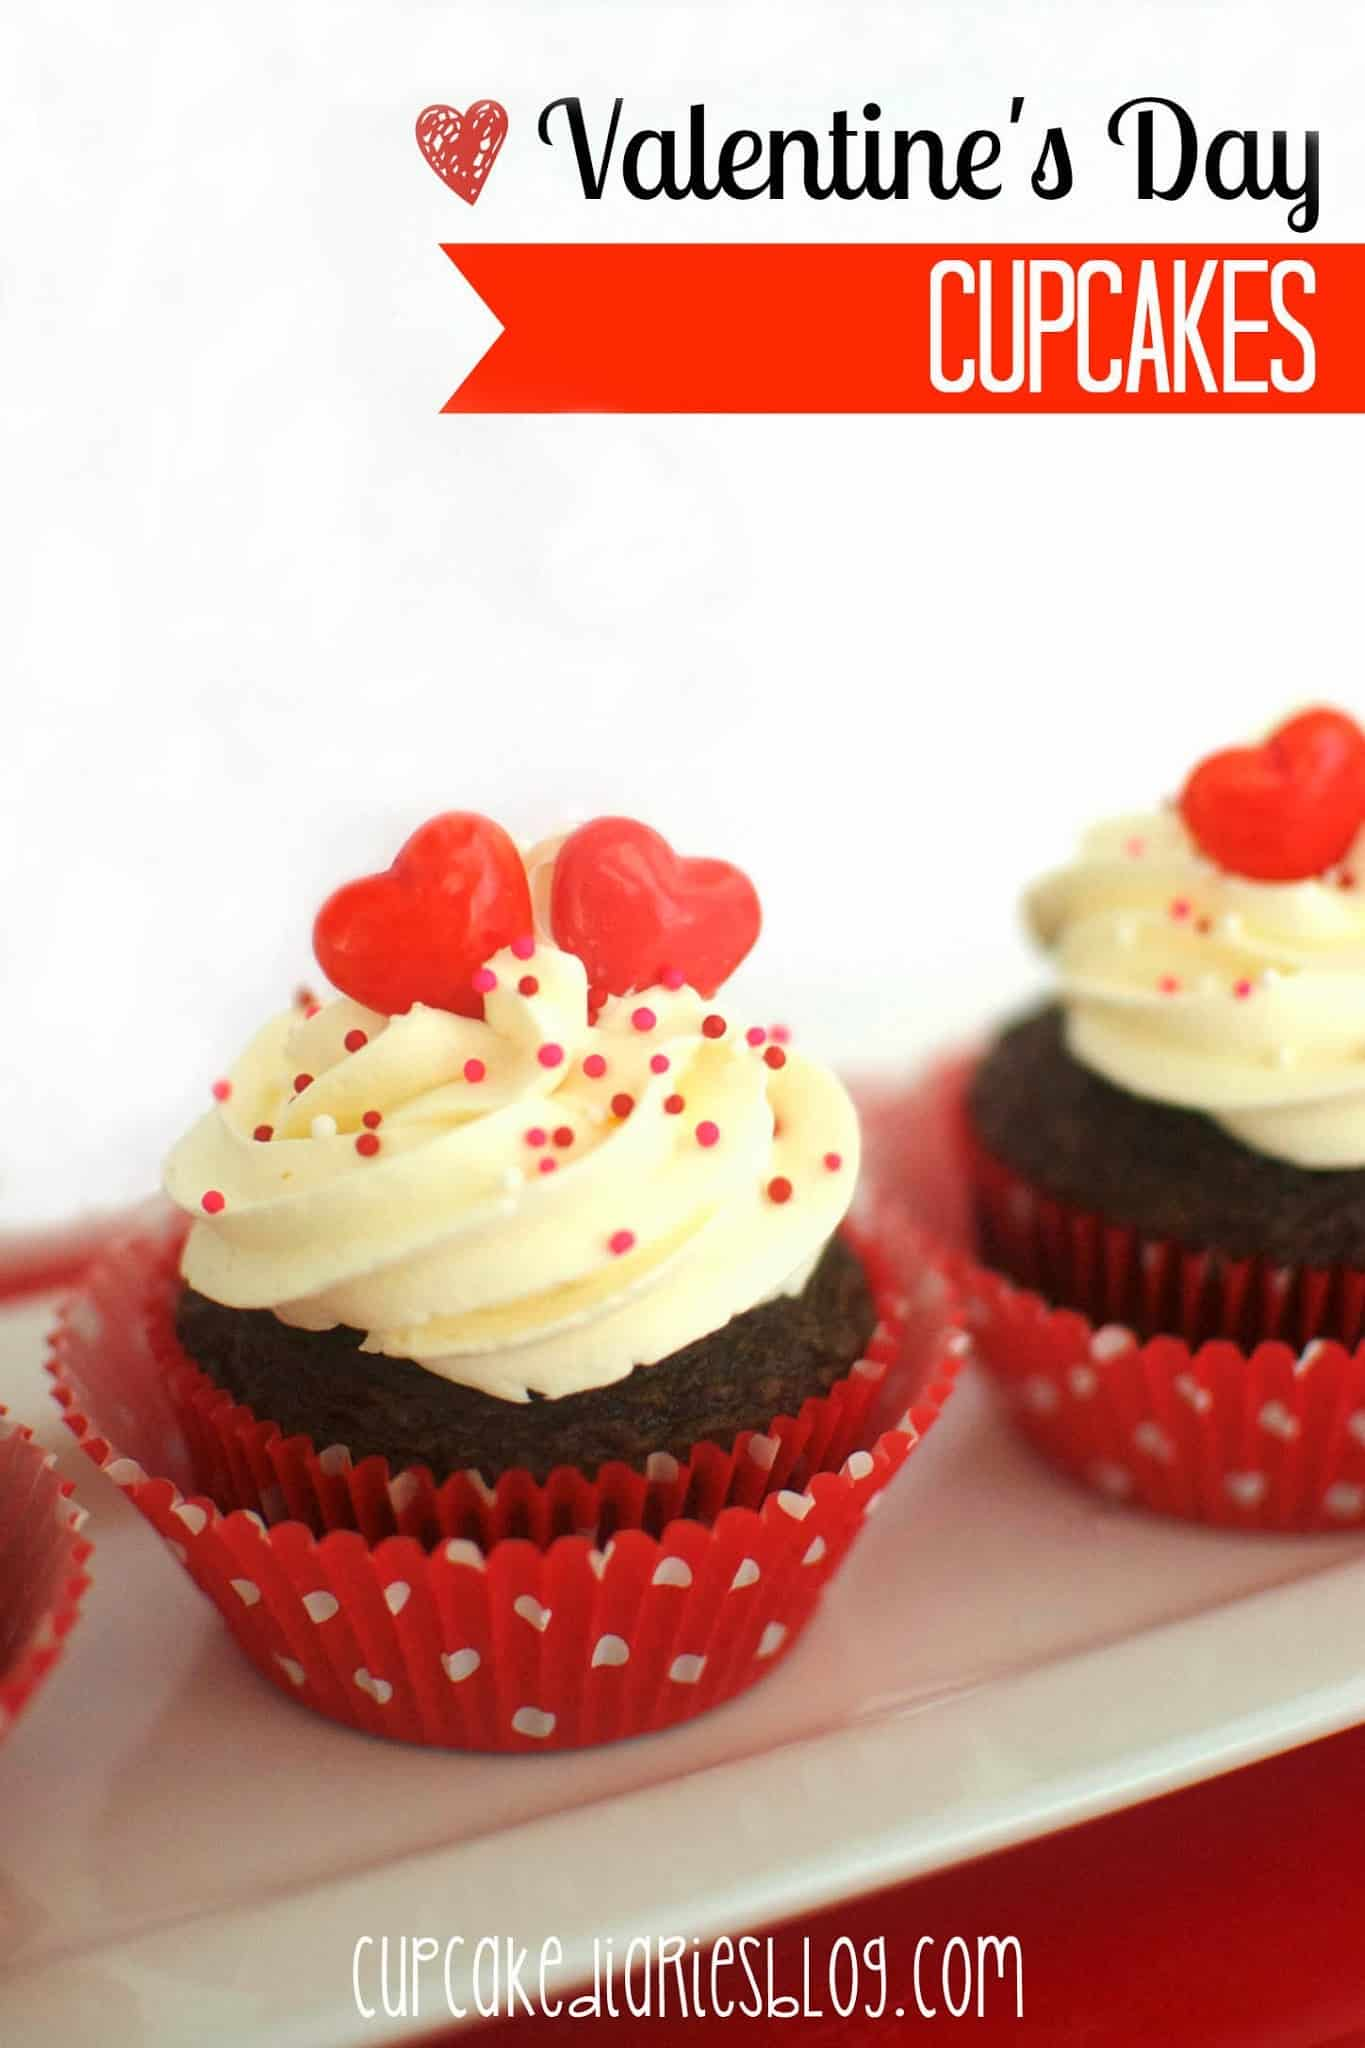 and of course cupcakes are my very favorite kind i especially love holiday cupcakes these valentines day cupcakes are really cute and